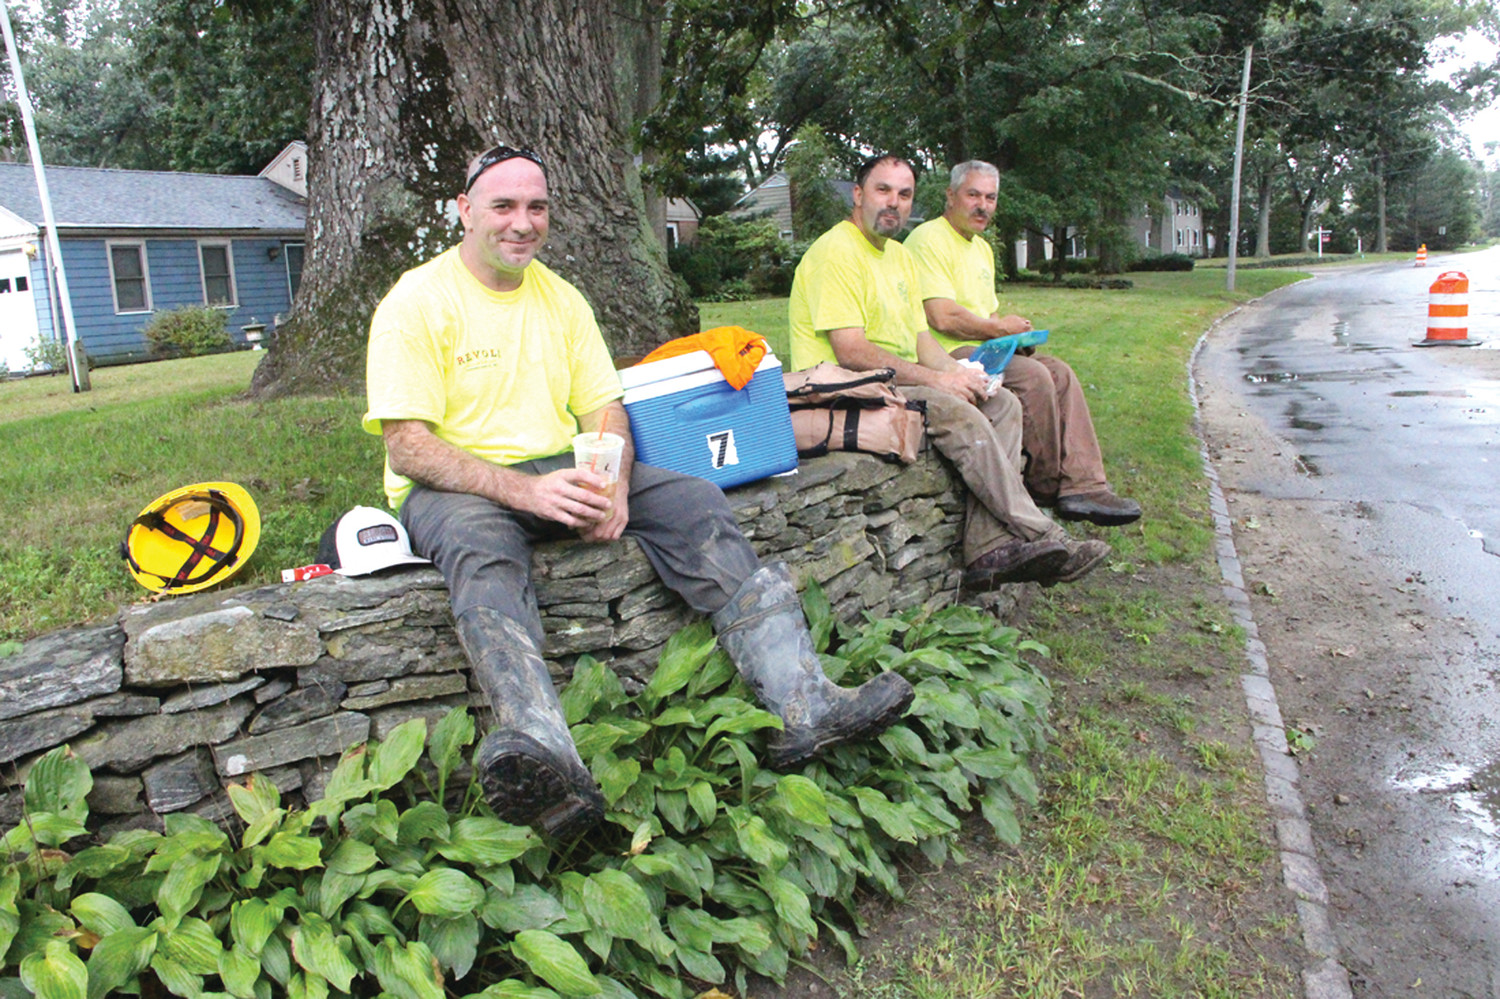 TIME FOR A BREAK: C.B. Utility workers Jeff Oliveira, John Goncalves and Sal Schiappa take some time off for lunch from their work on Gov. Francis Phase III sewers.